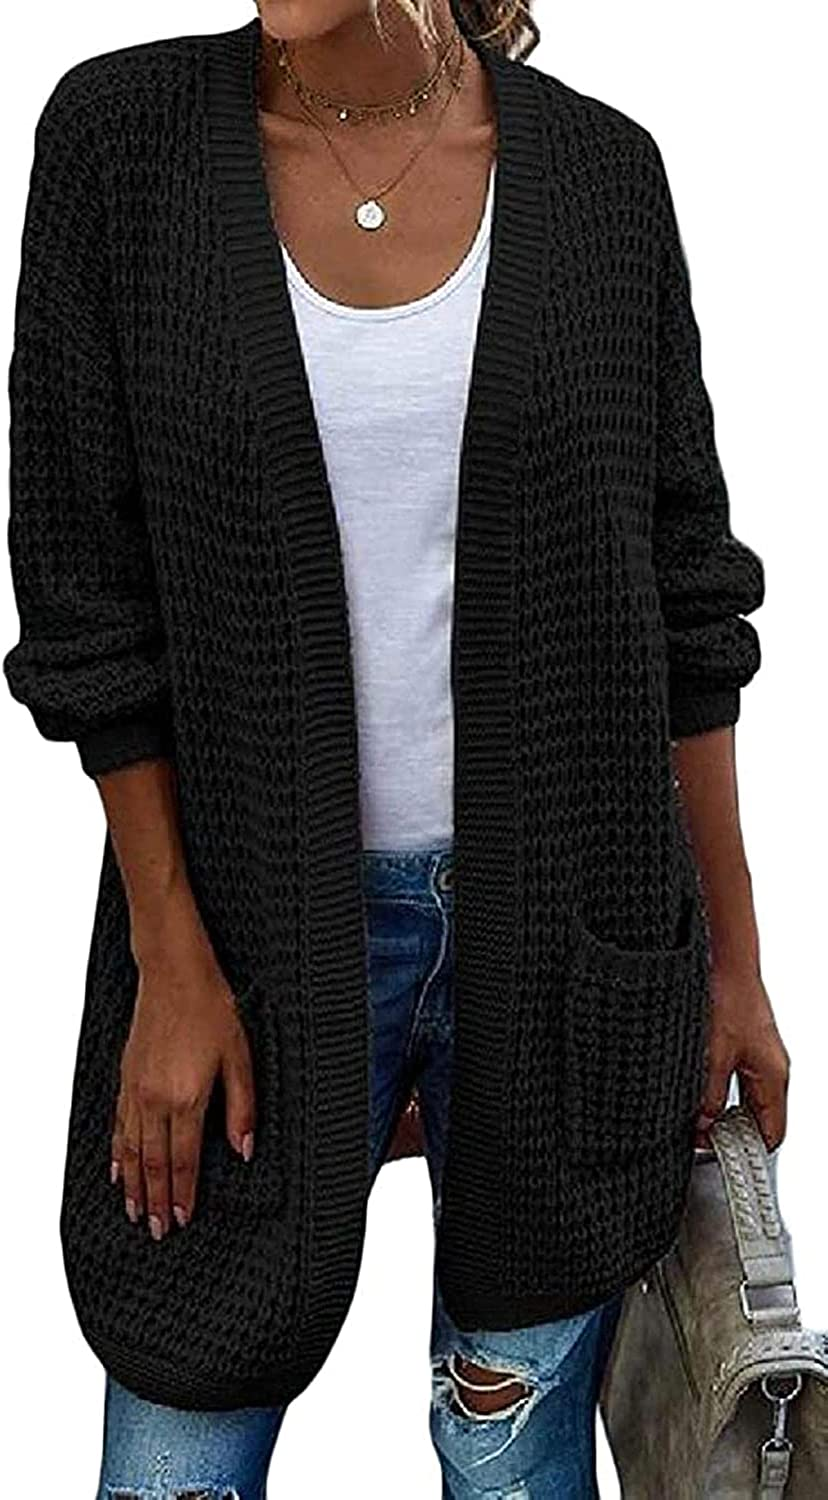 Women's Solid Sacramento Mall Relaxed Fit Cardigan Open-Front All items free shipping Contrast